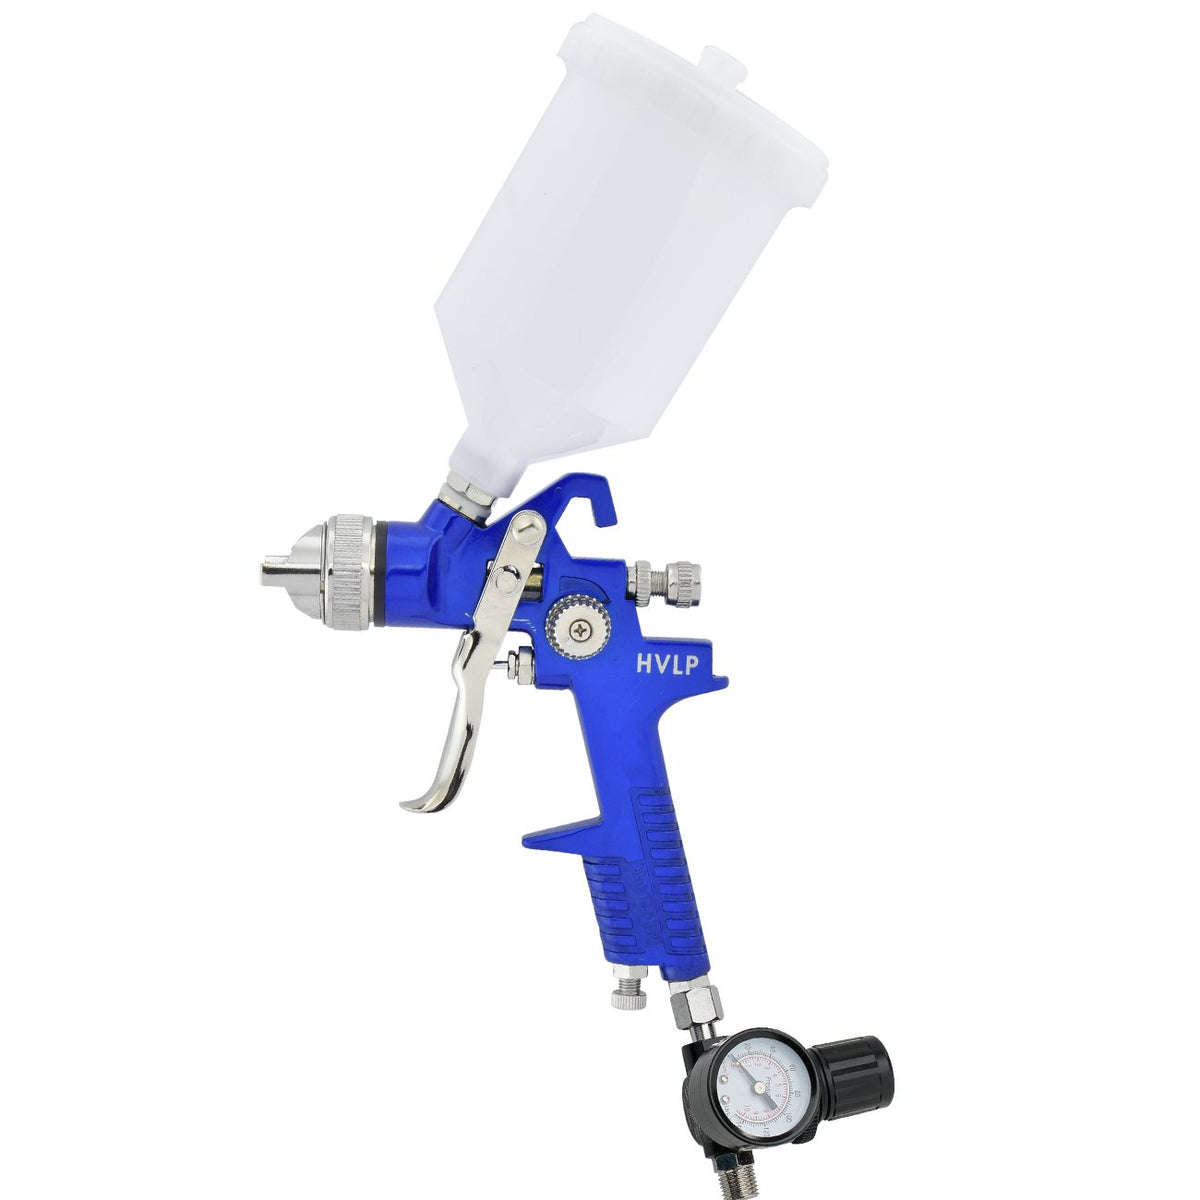 HVLP Gravity Feed Air Spray Gun with Gauge, 1.7mm Nozzle Size, 600cc Plastic Cup